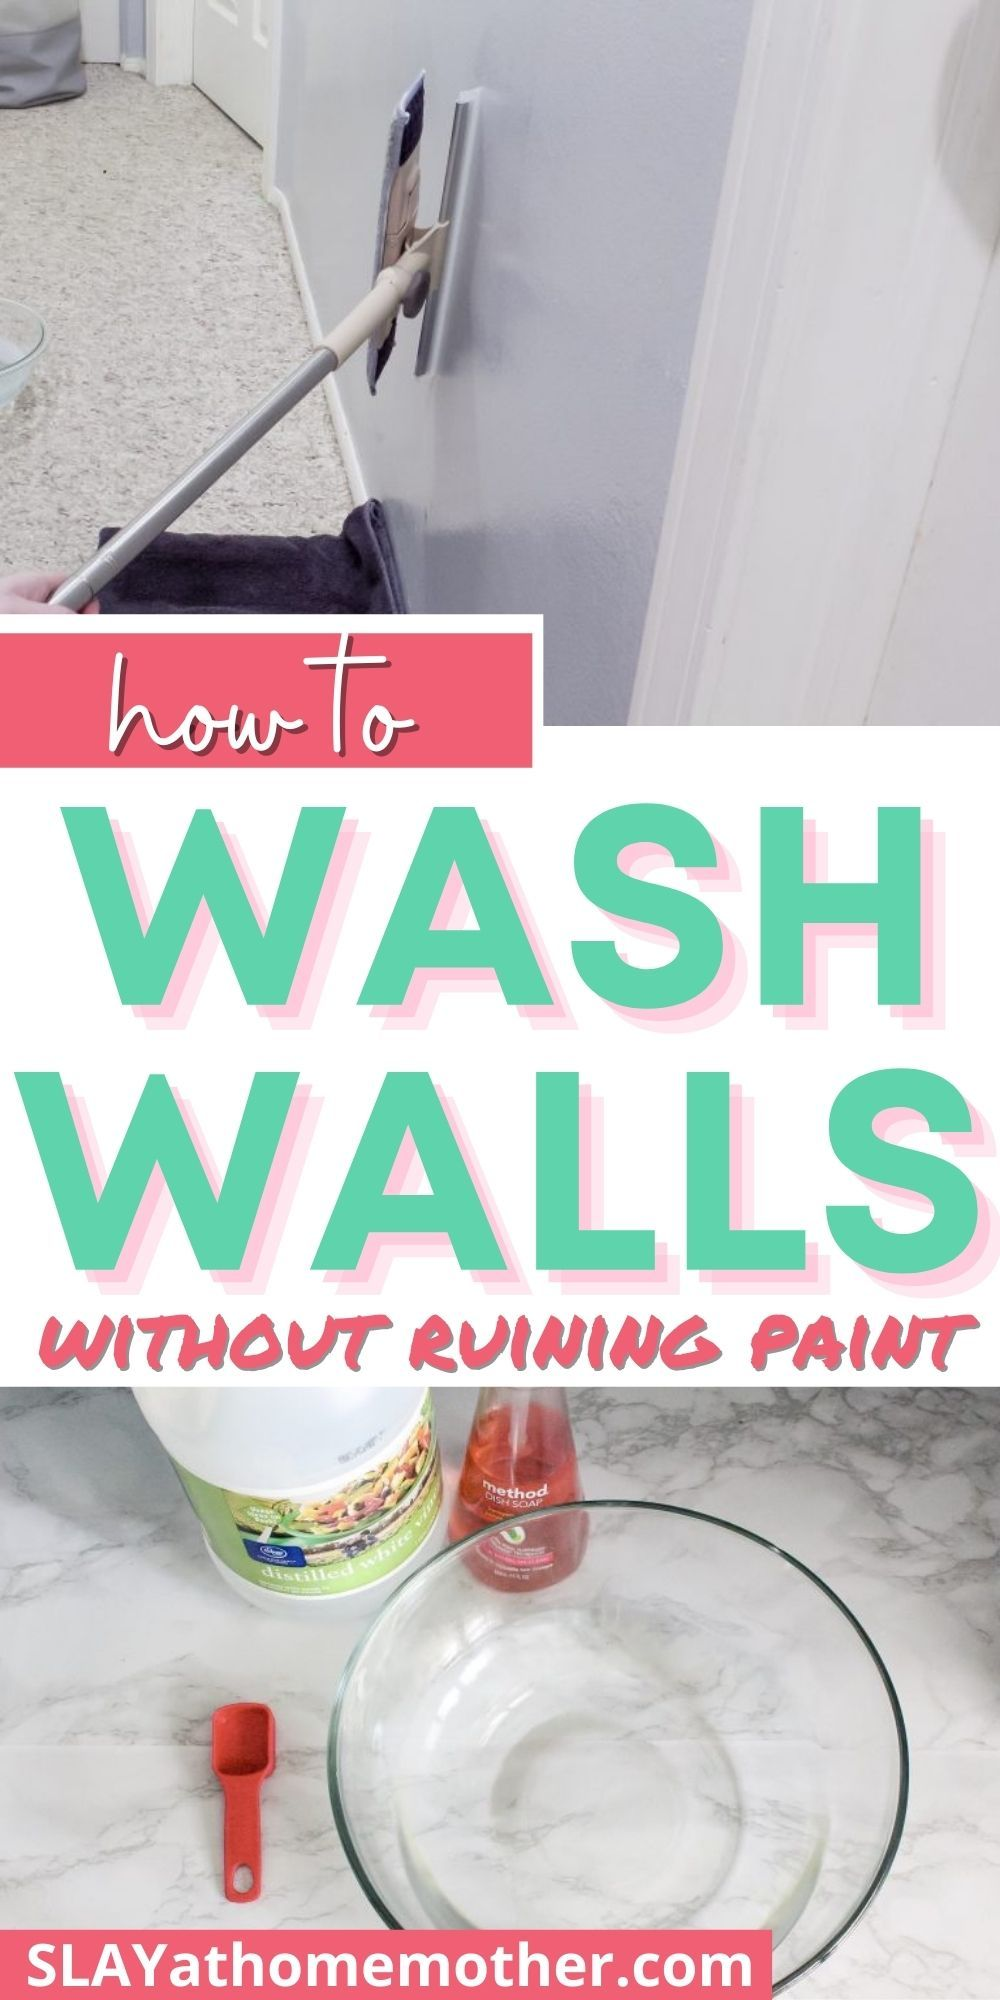 How To Clean Walls Without Removing Or Discoloring Paint In 2020 Cleaning Walls Cleaning Painted Walls Washing Walls